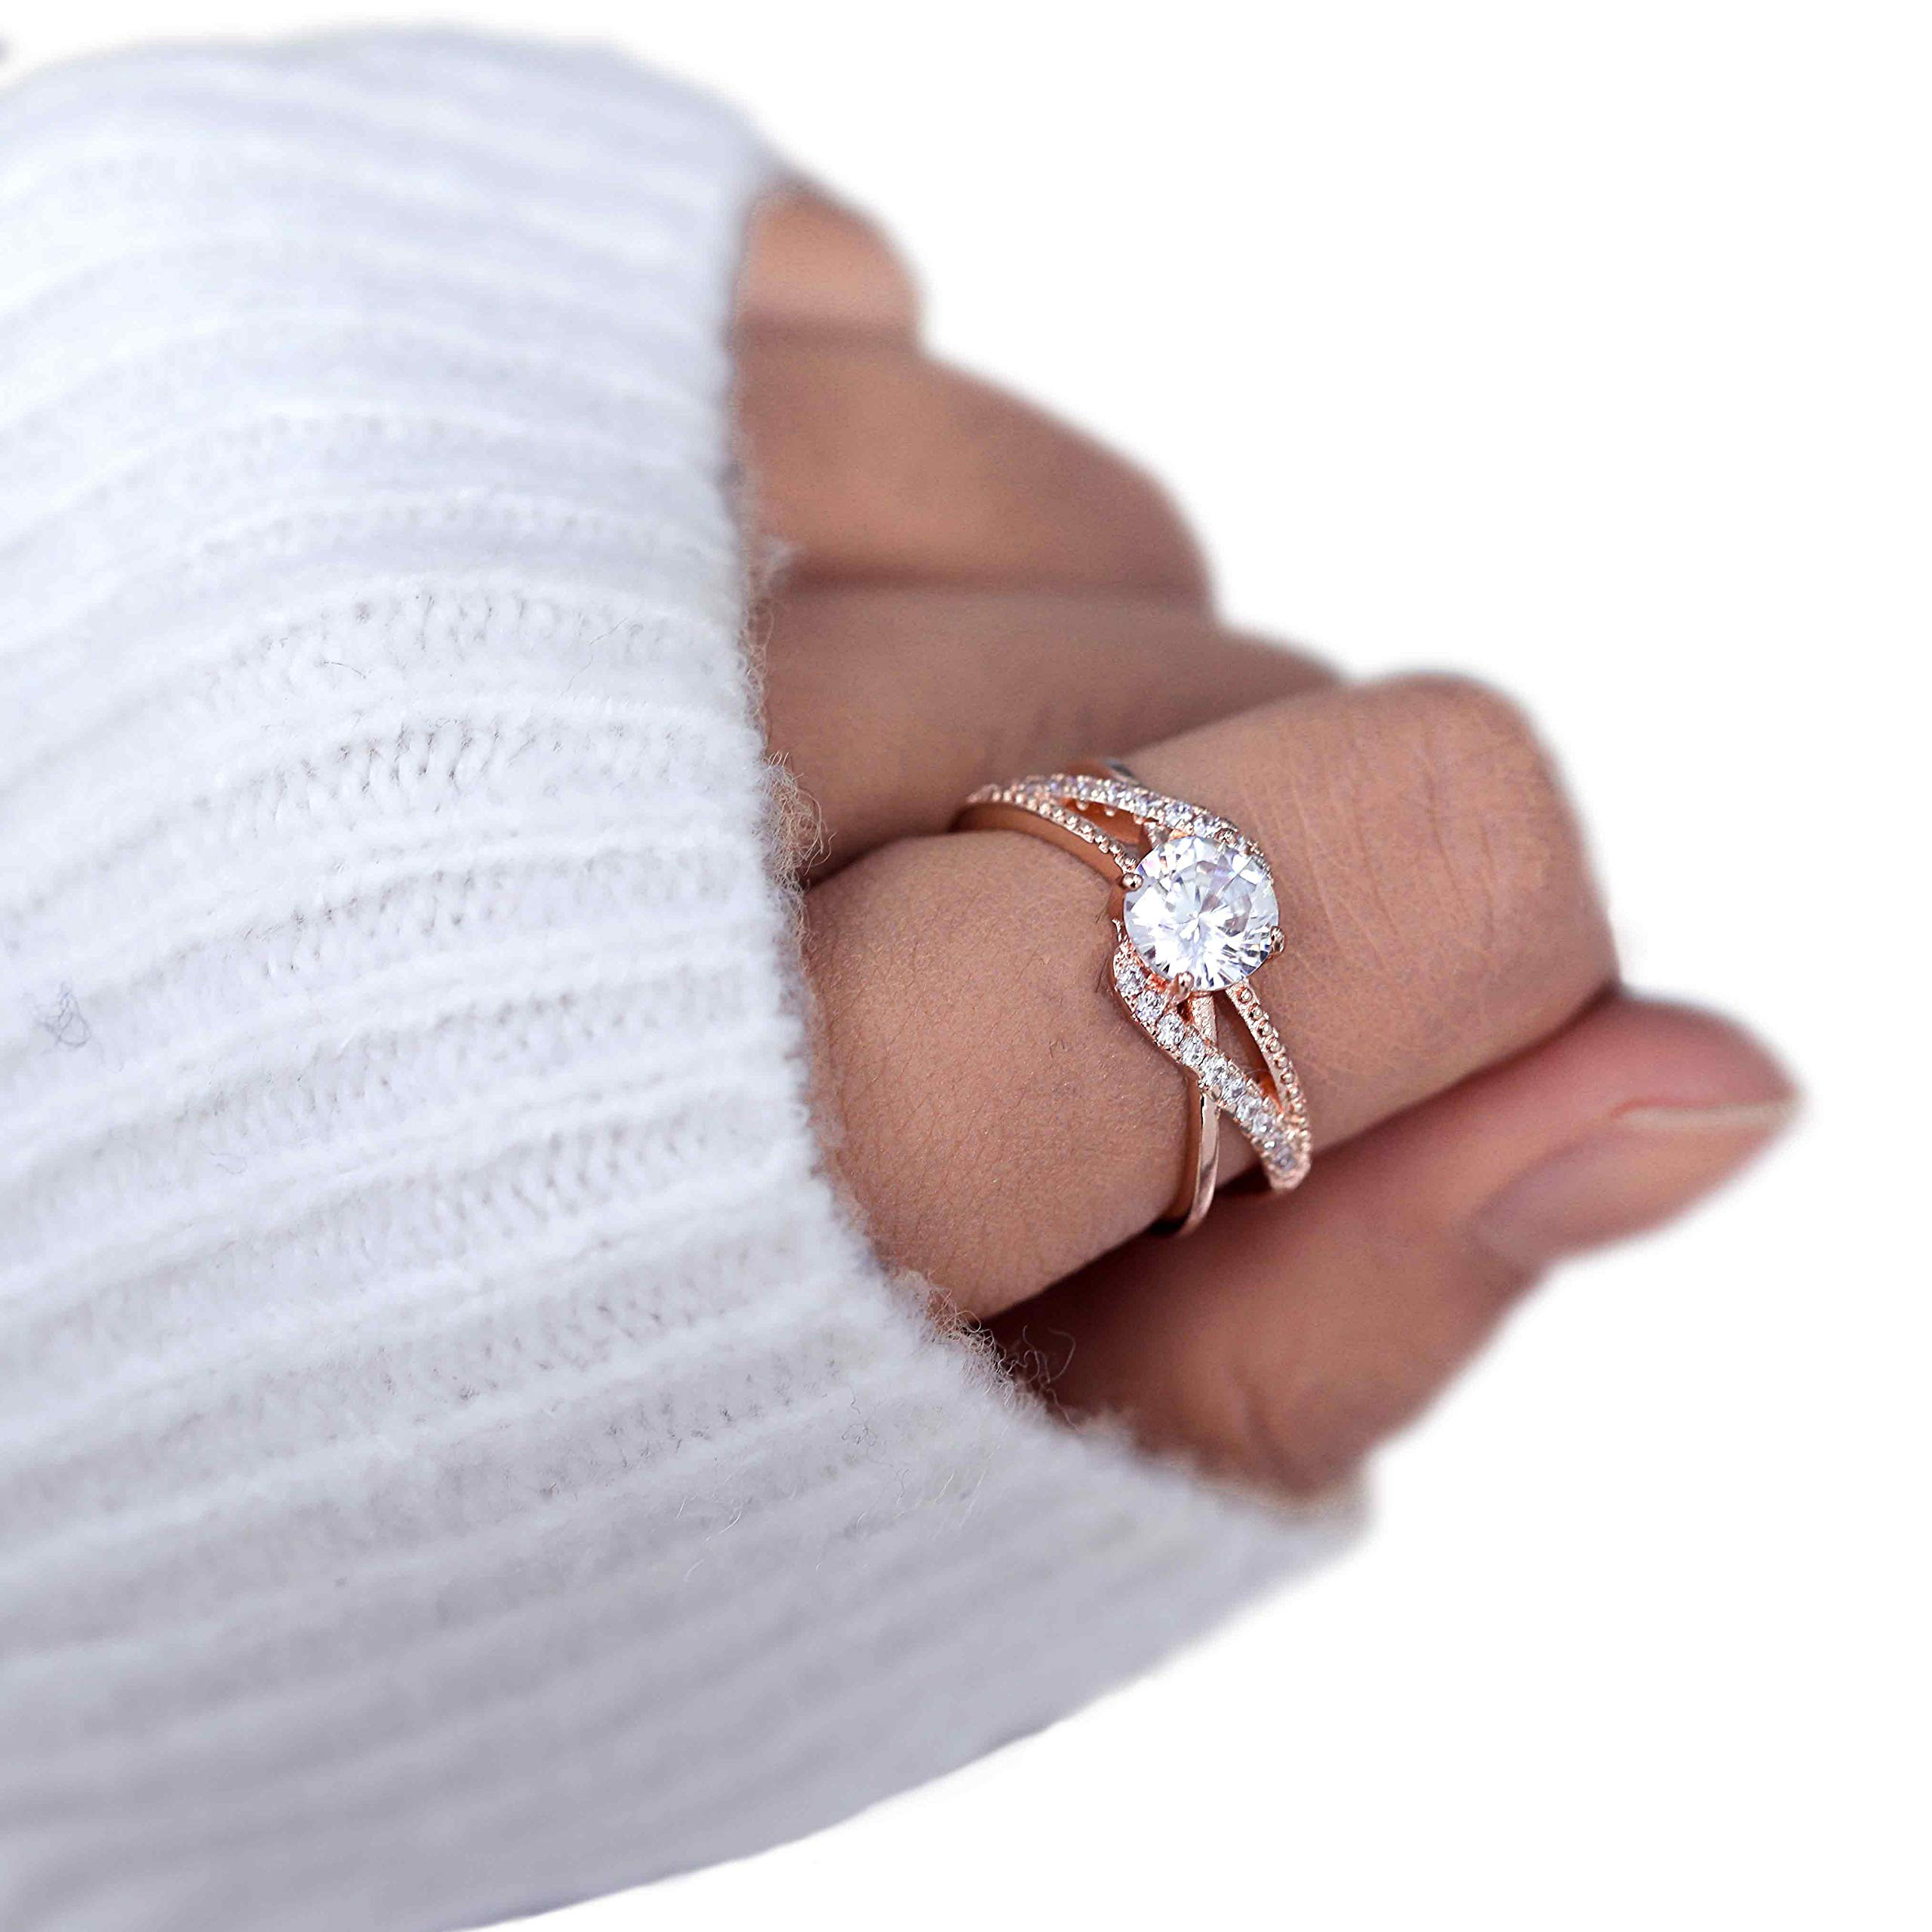 37438d68760a44 Amazon.com: Barogirl Promise Ring Rose Gold Engagement Wedding Bands for  Women Cubic Zirconia (8): Beauty